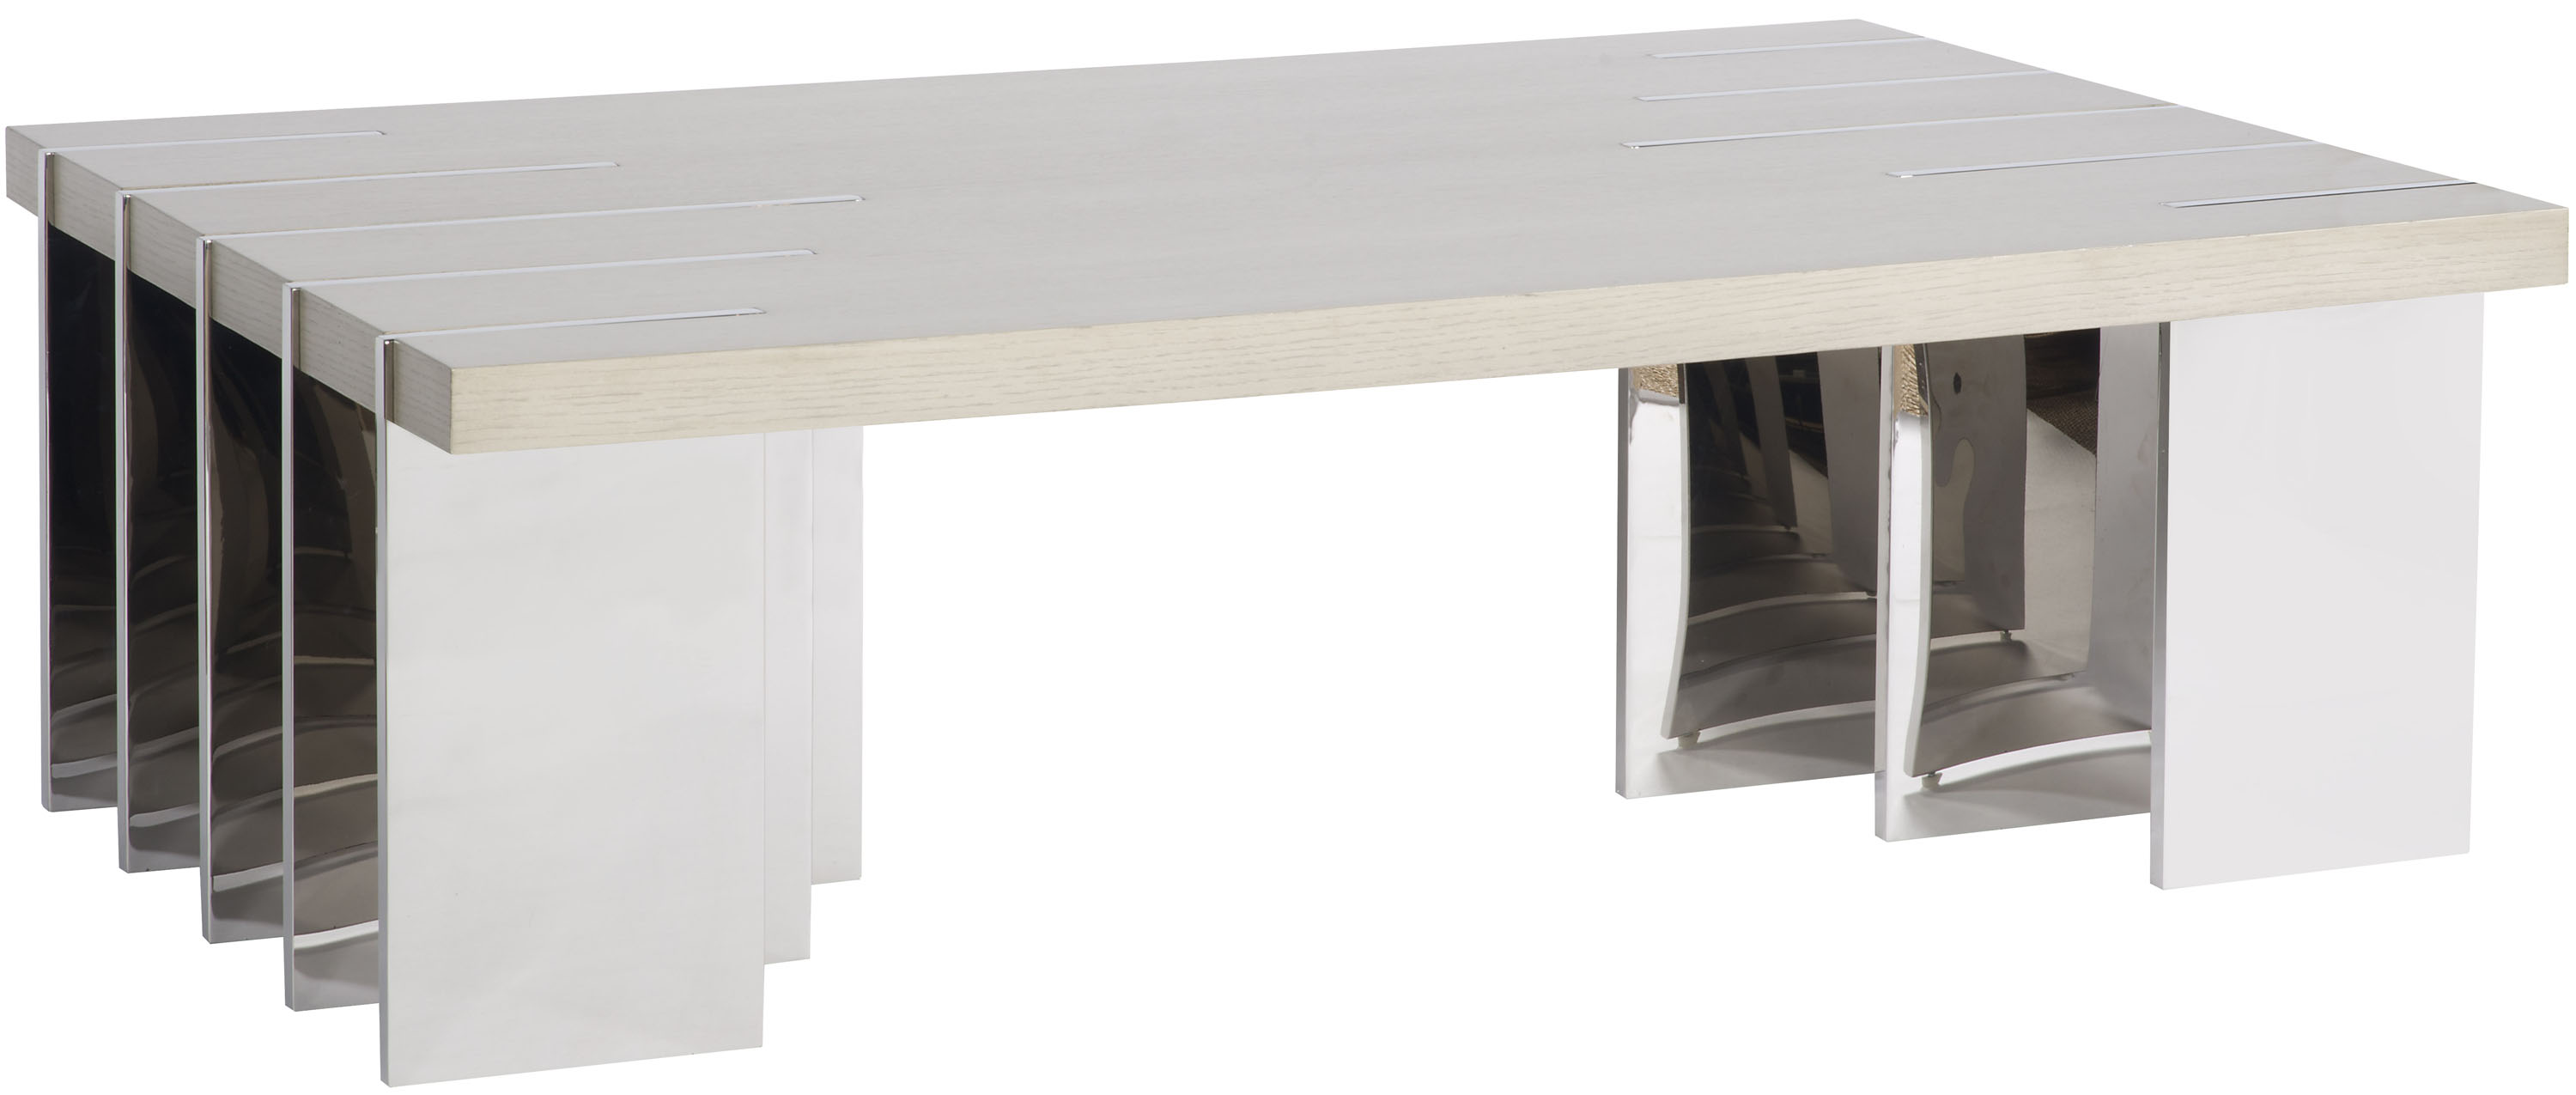 Vanguard-coffee-table